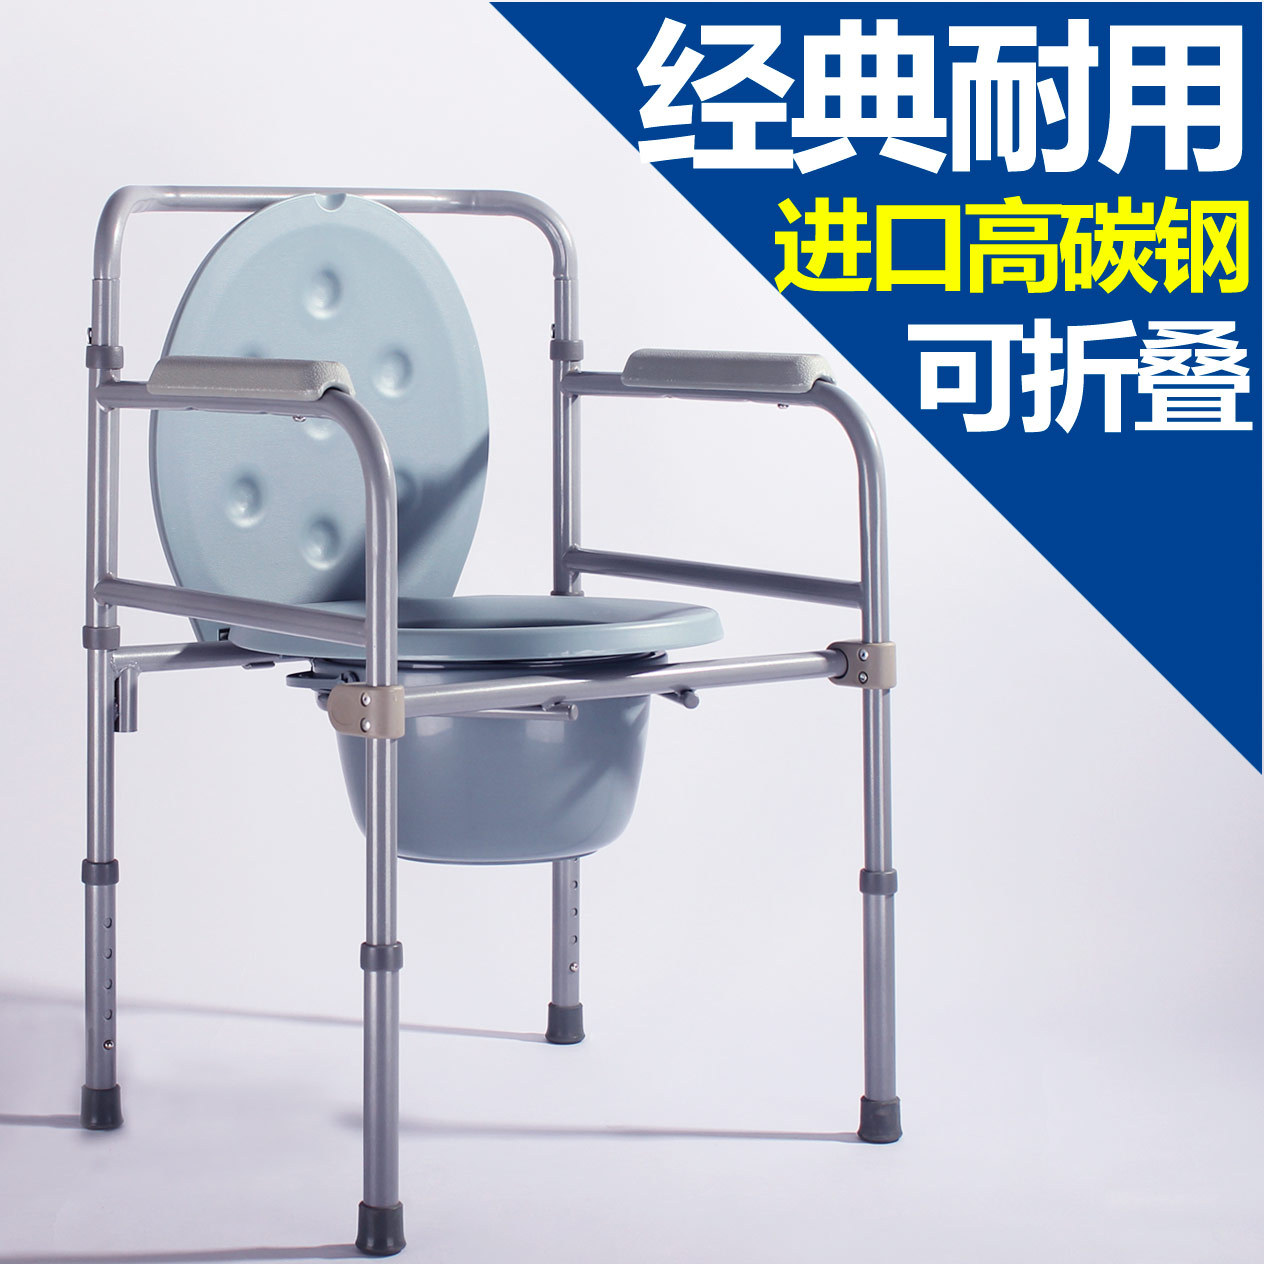 Adult toilet chair - Medical Patient Women Potty Chair After Folding Lifting Seat Toilet Seat For The Elderly In Adult Toilet Chair